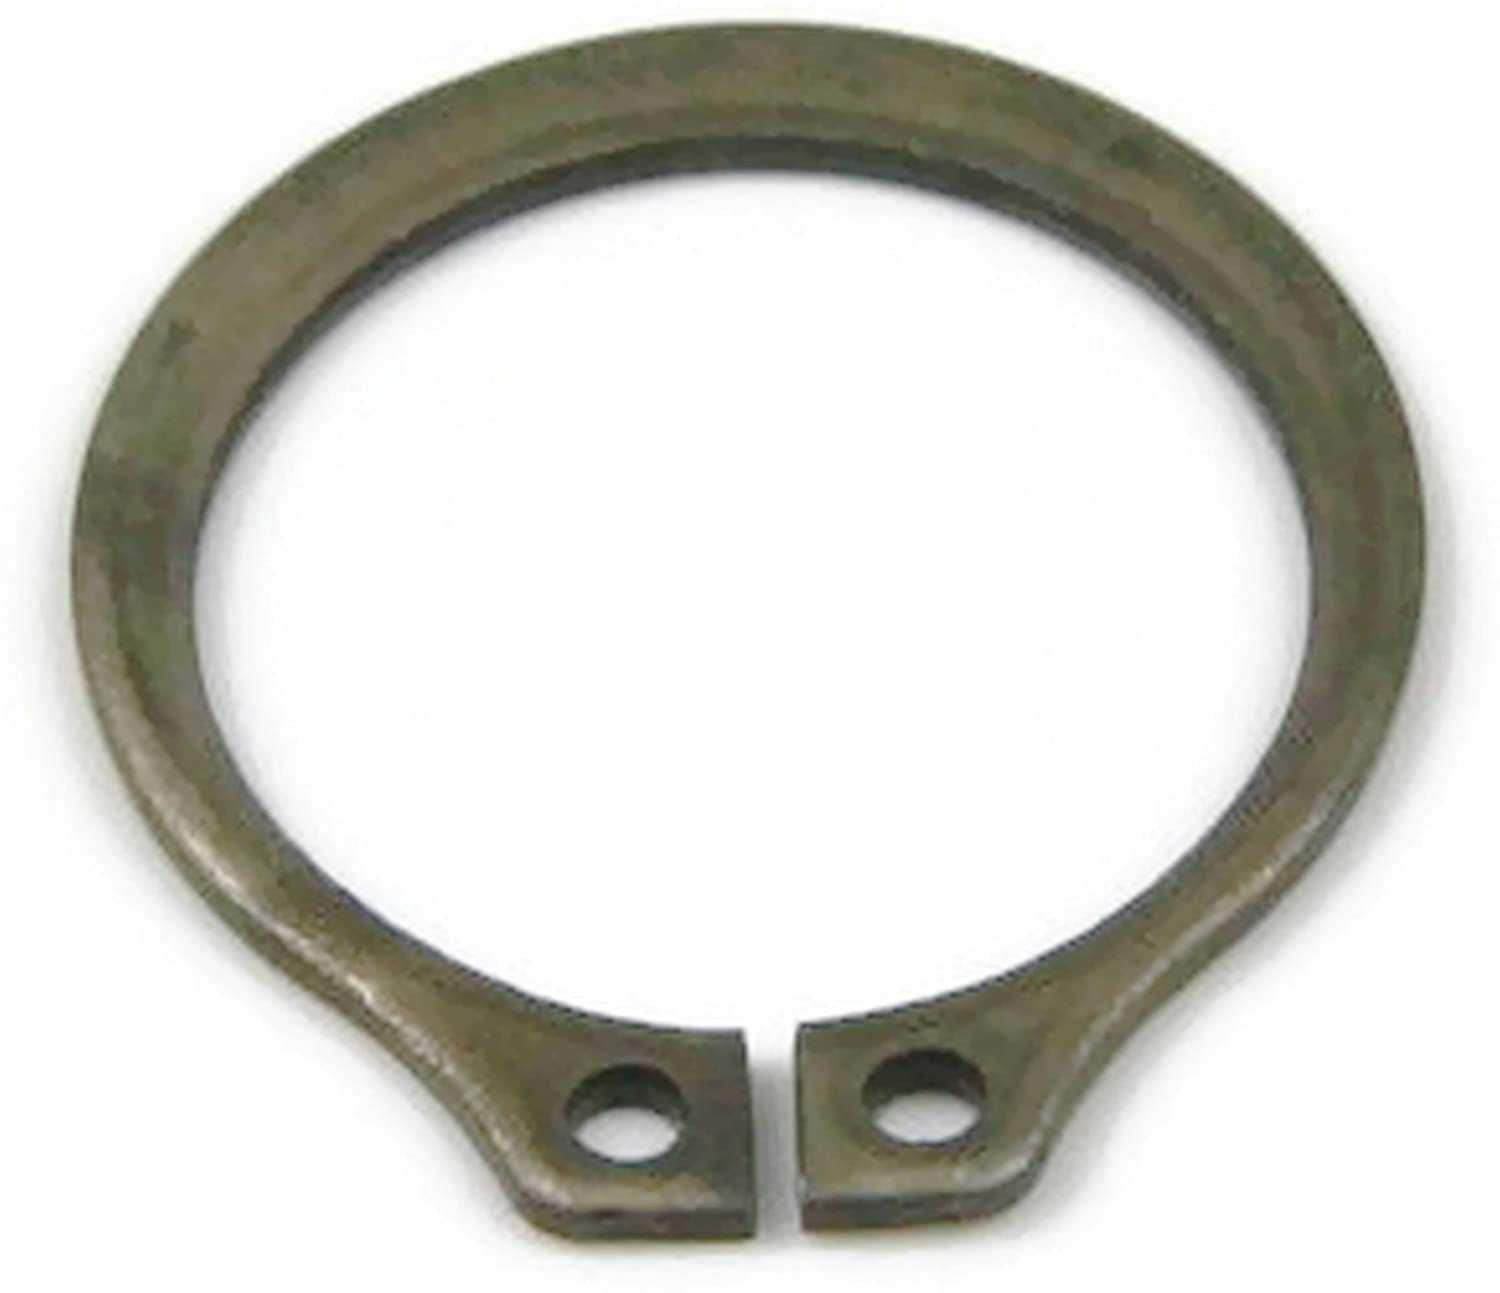 Stainless Steel Snap Rings Retaining Rings SH-143SS 1-7//16 Qty 250